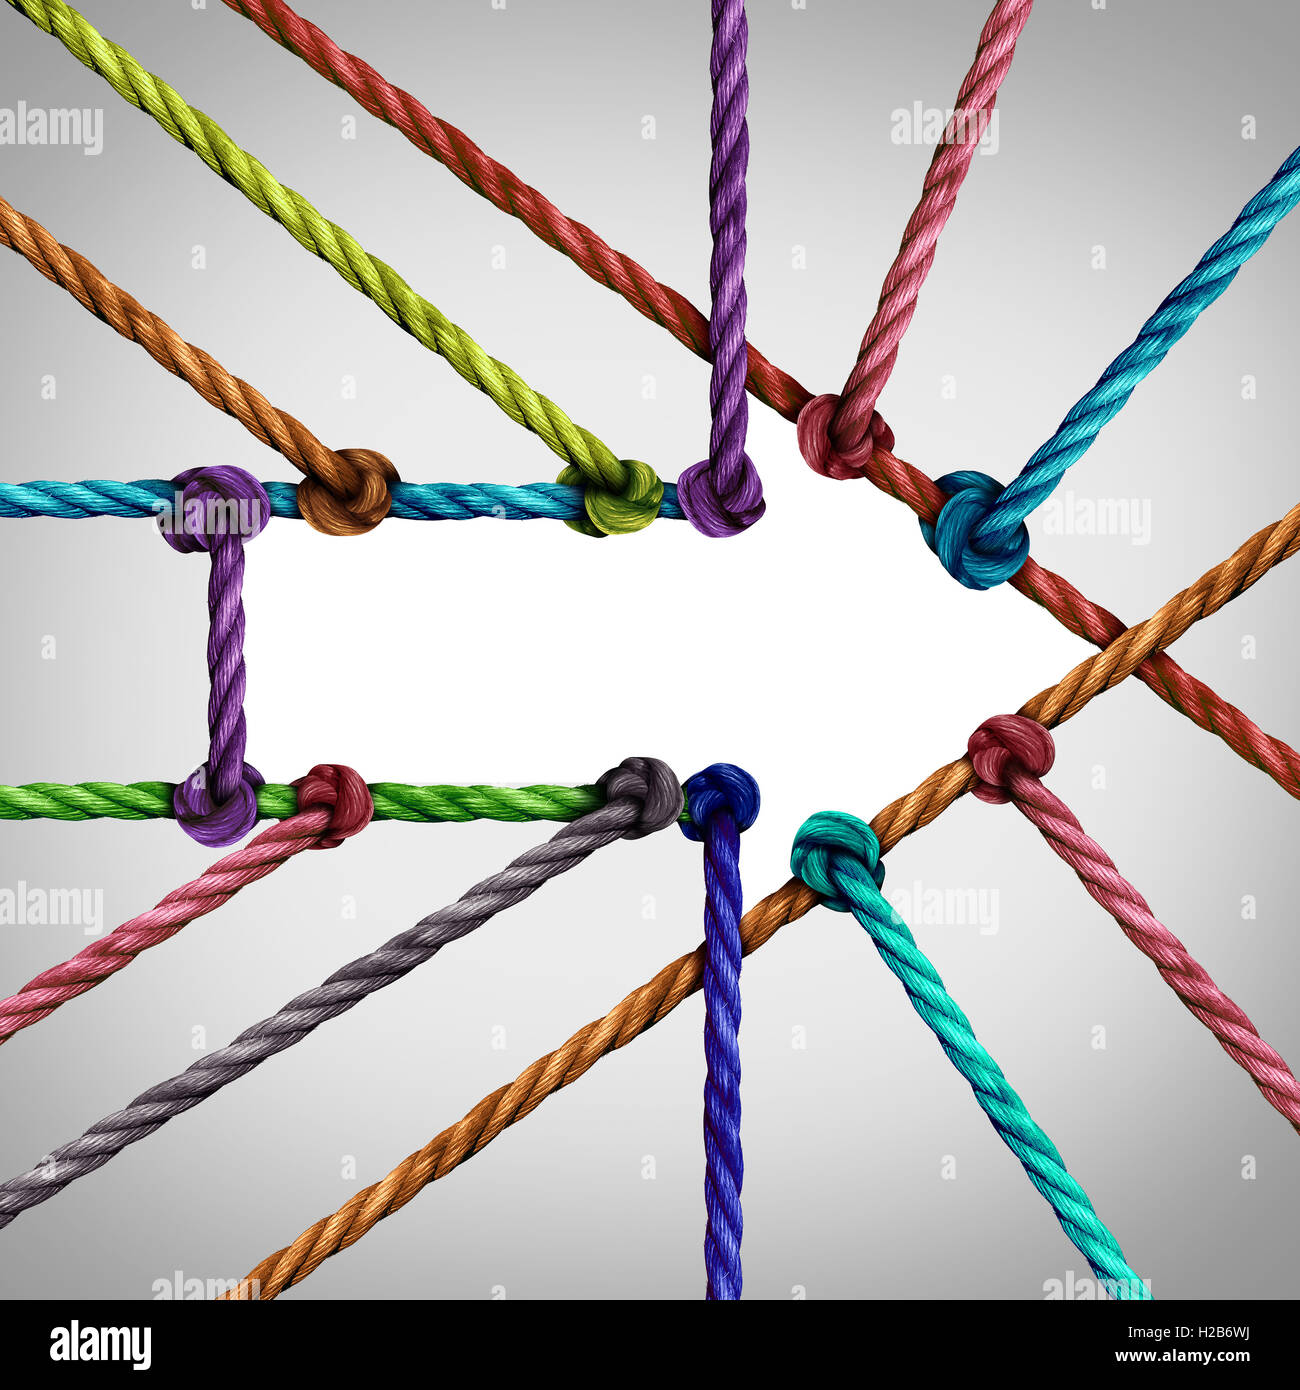 Success arrow connection and central network achievement as a business concept with a group of diverse ropes connected - Stock Image